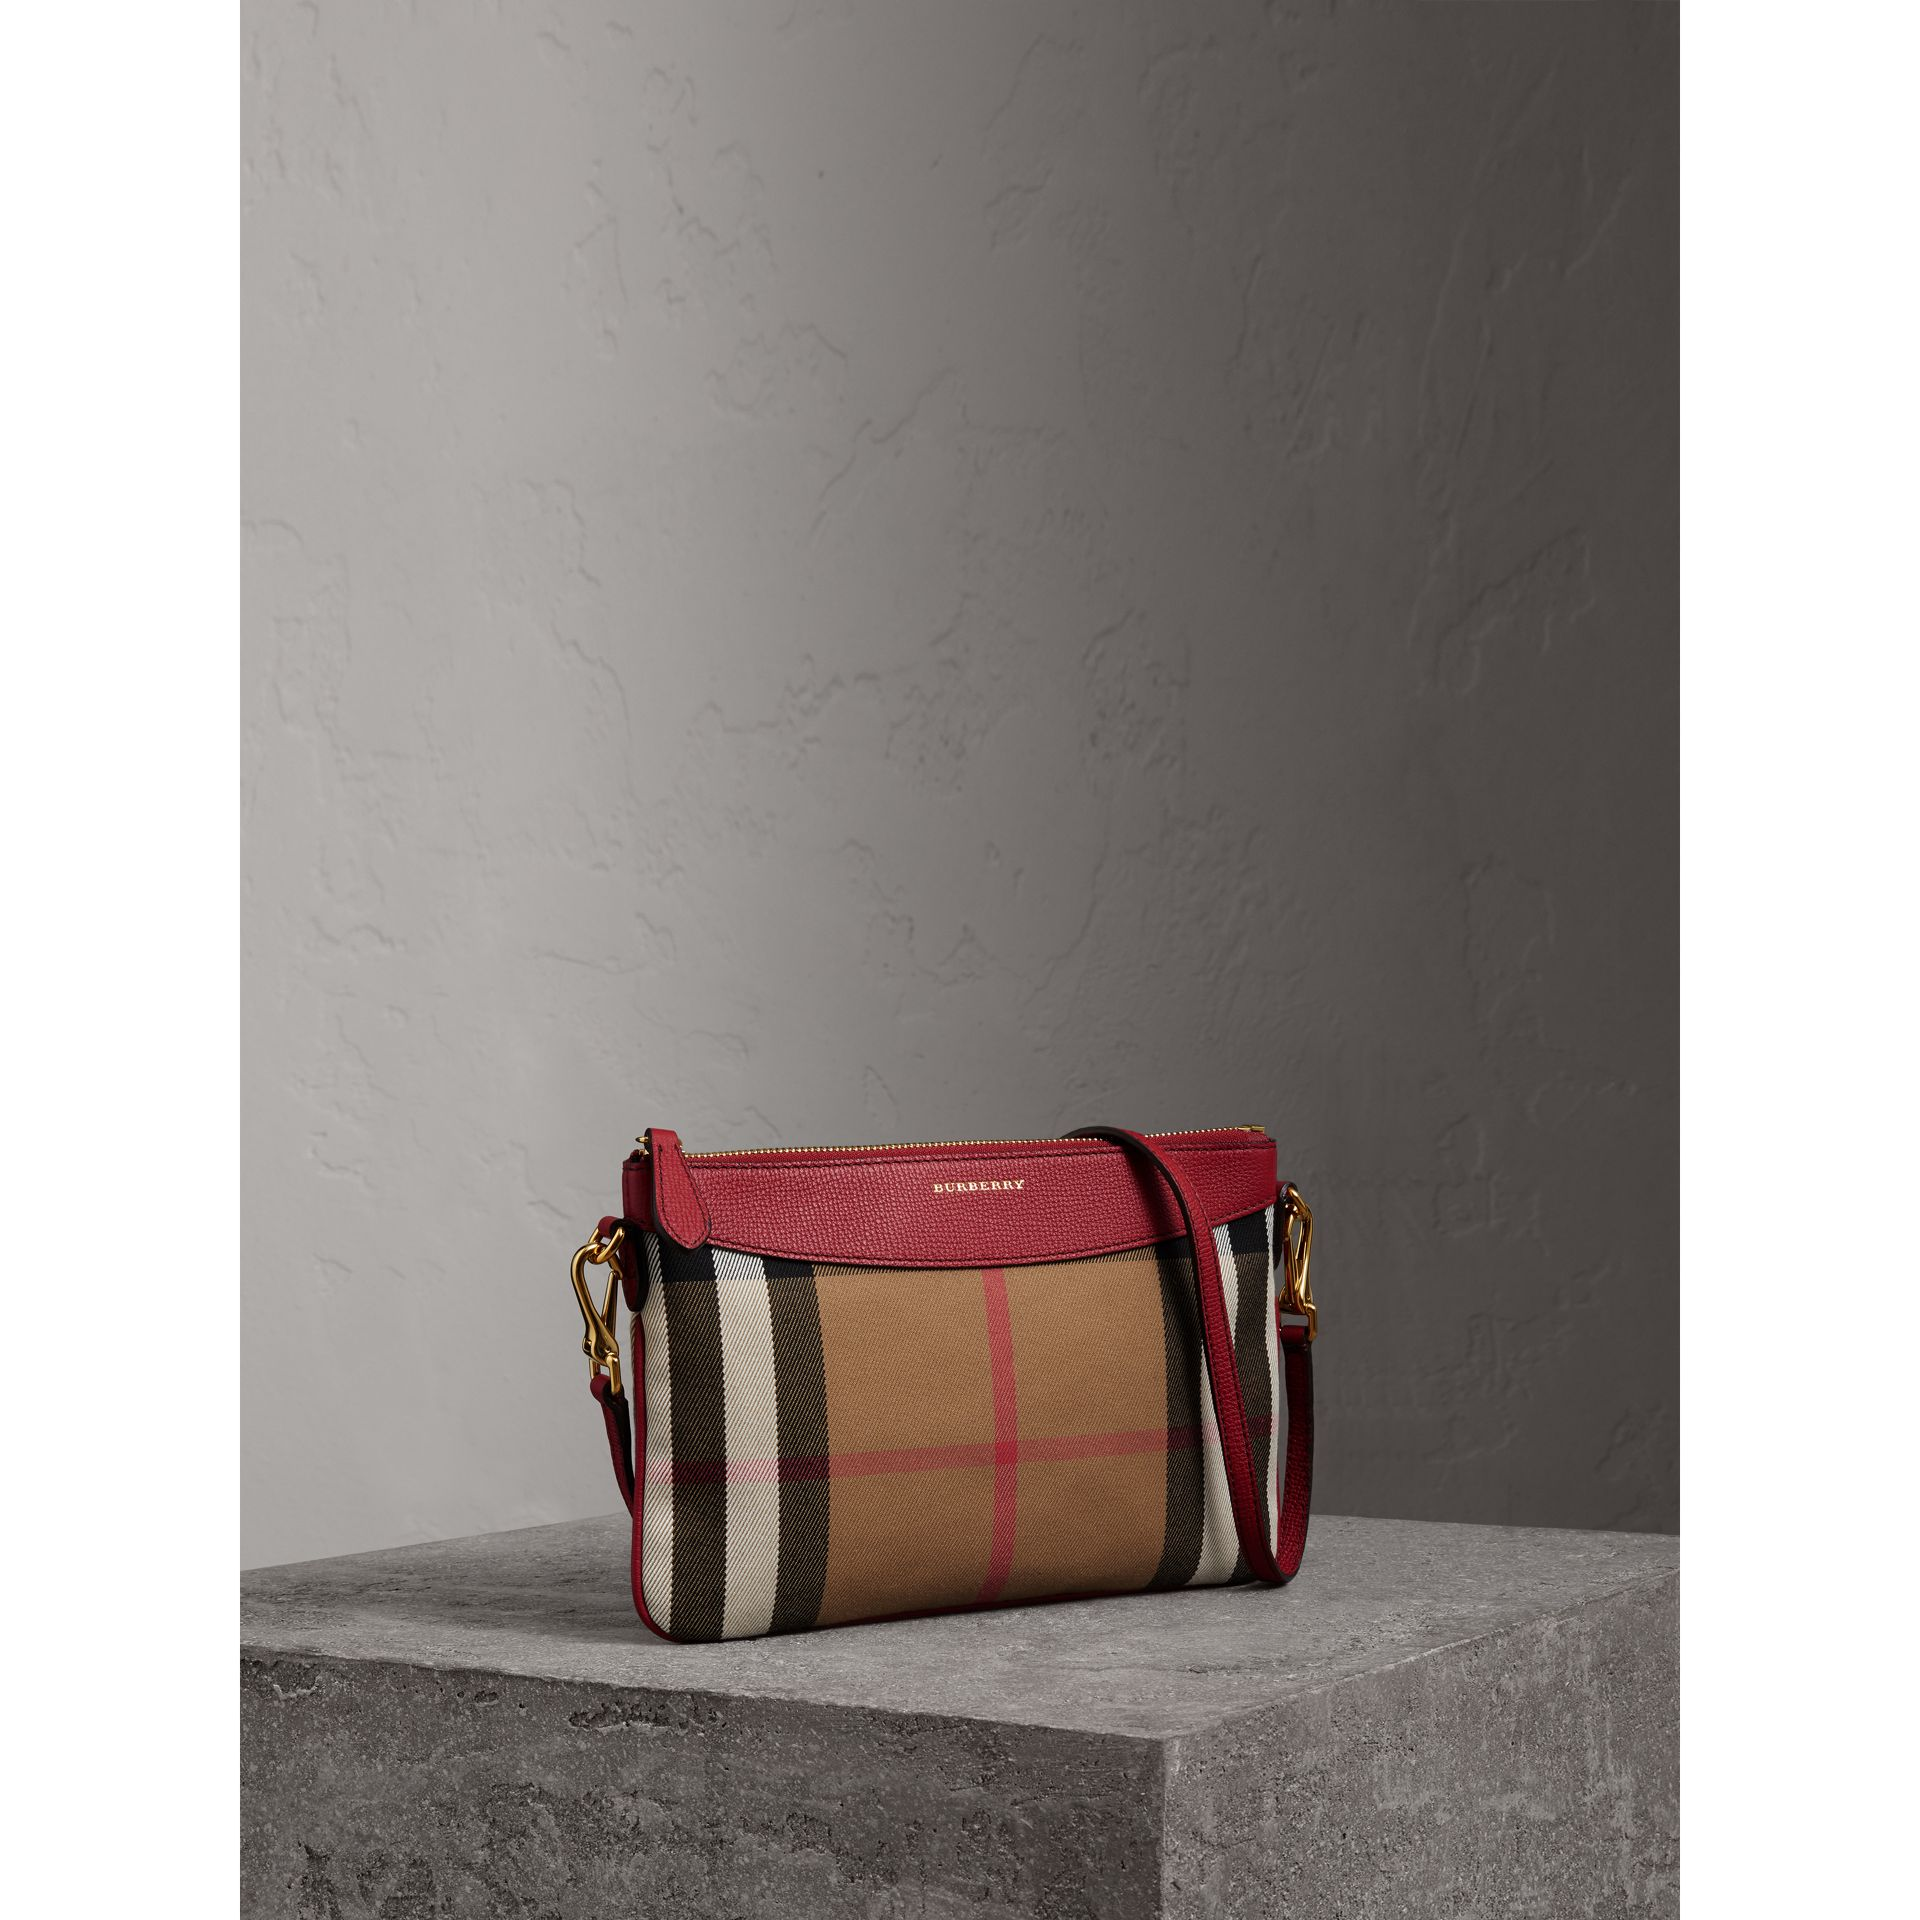 House Check and Leather Clutch Bag in Military Red - Women | Burberry United States - gallery image 6